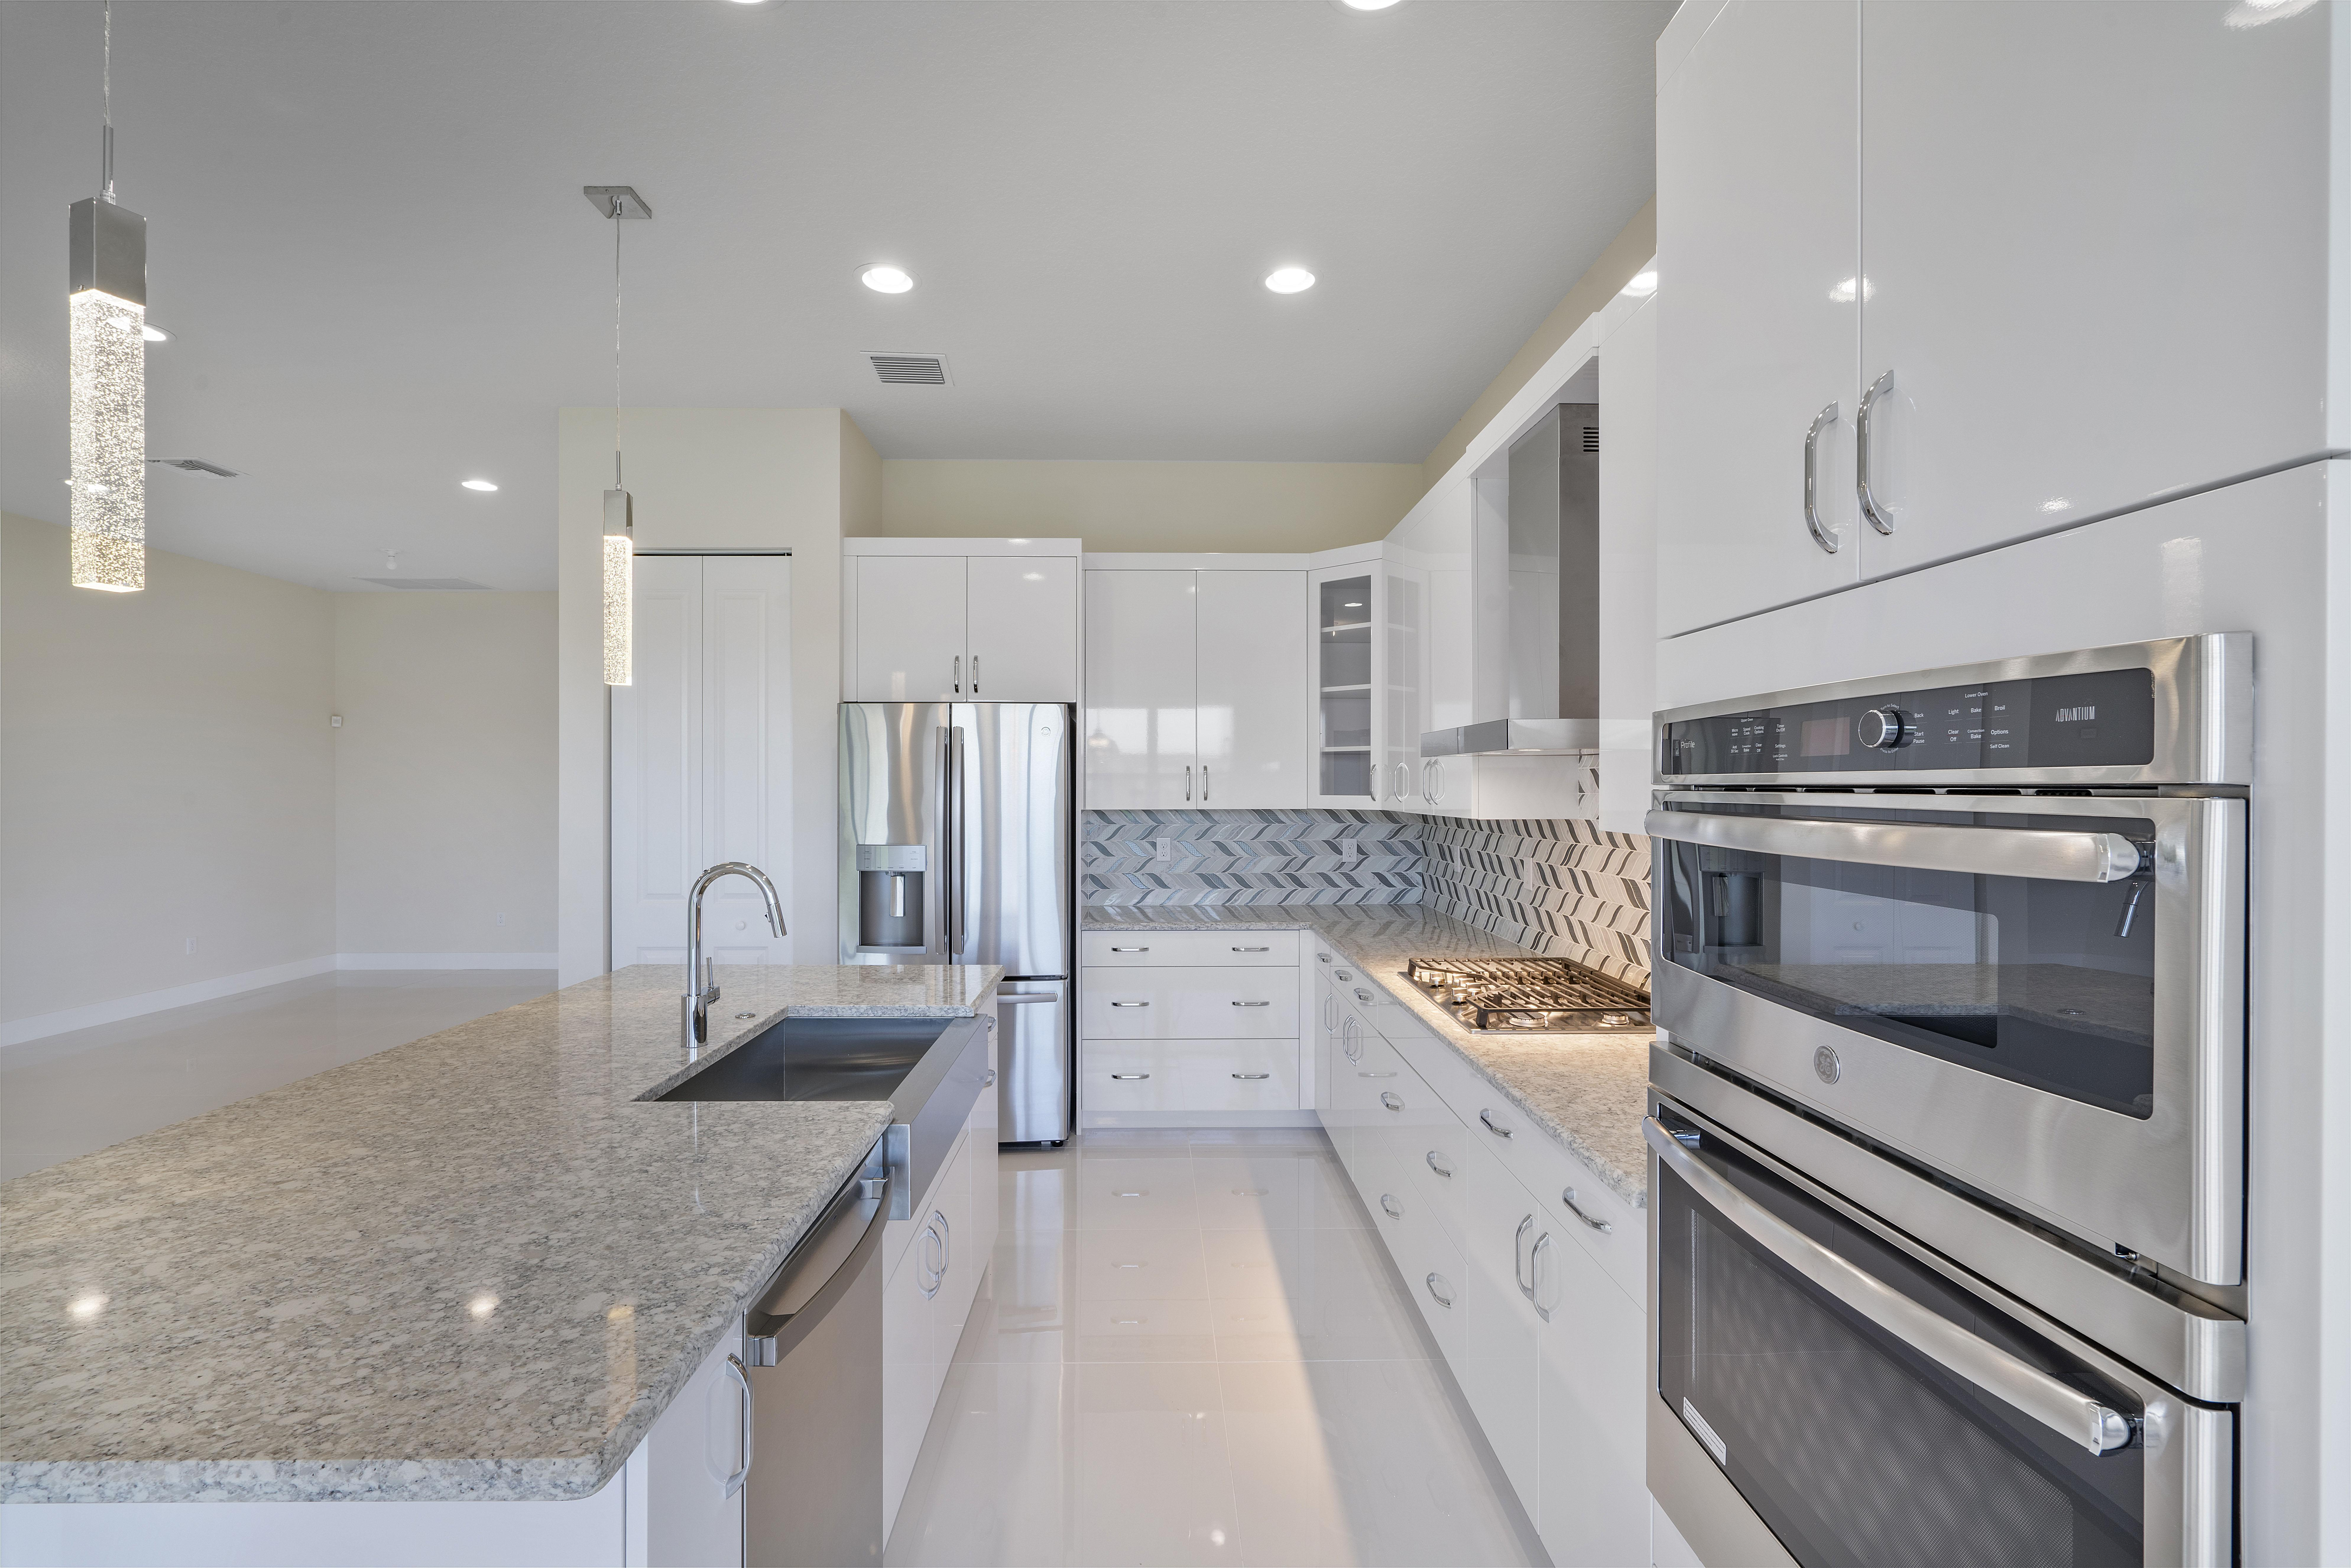 Kitchen featured in the Lago Grand By Akel Homes in Palm Beach County, FL